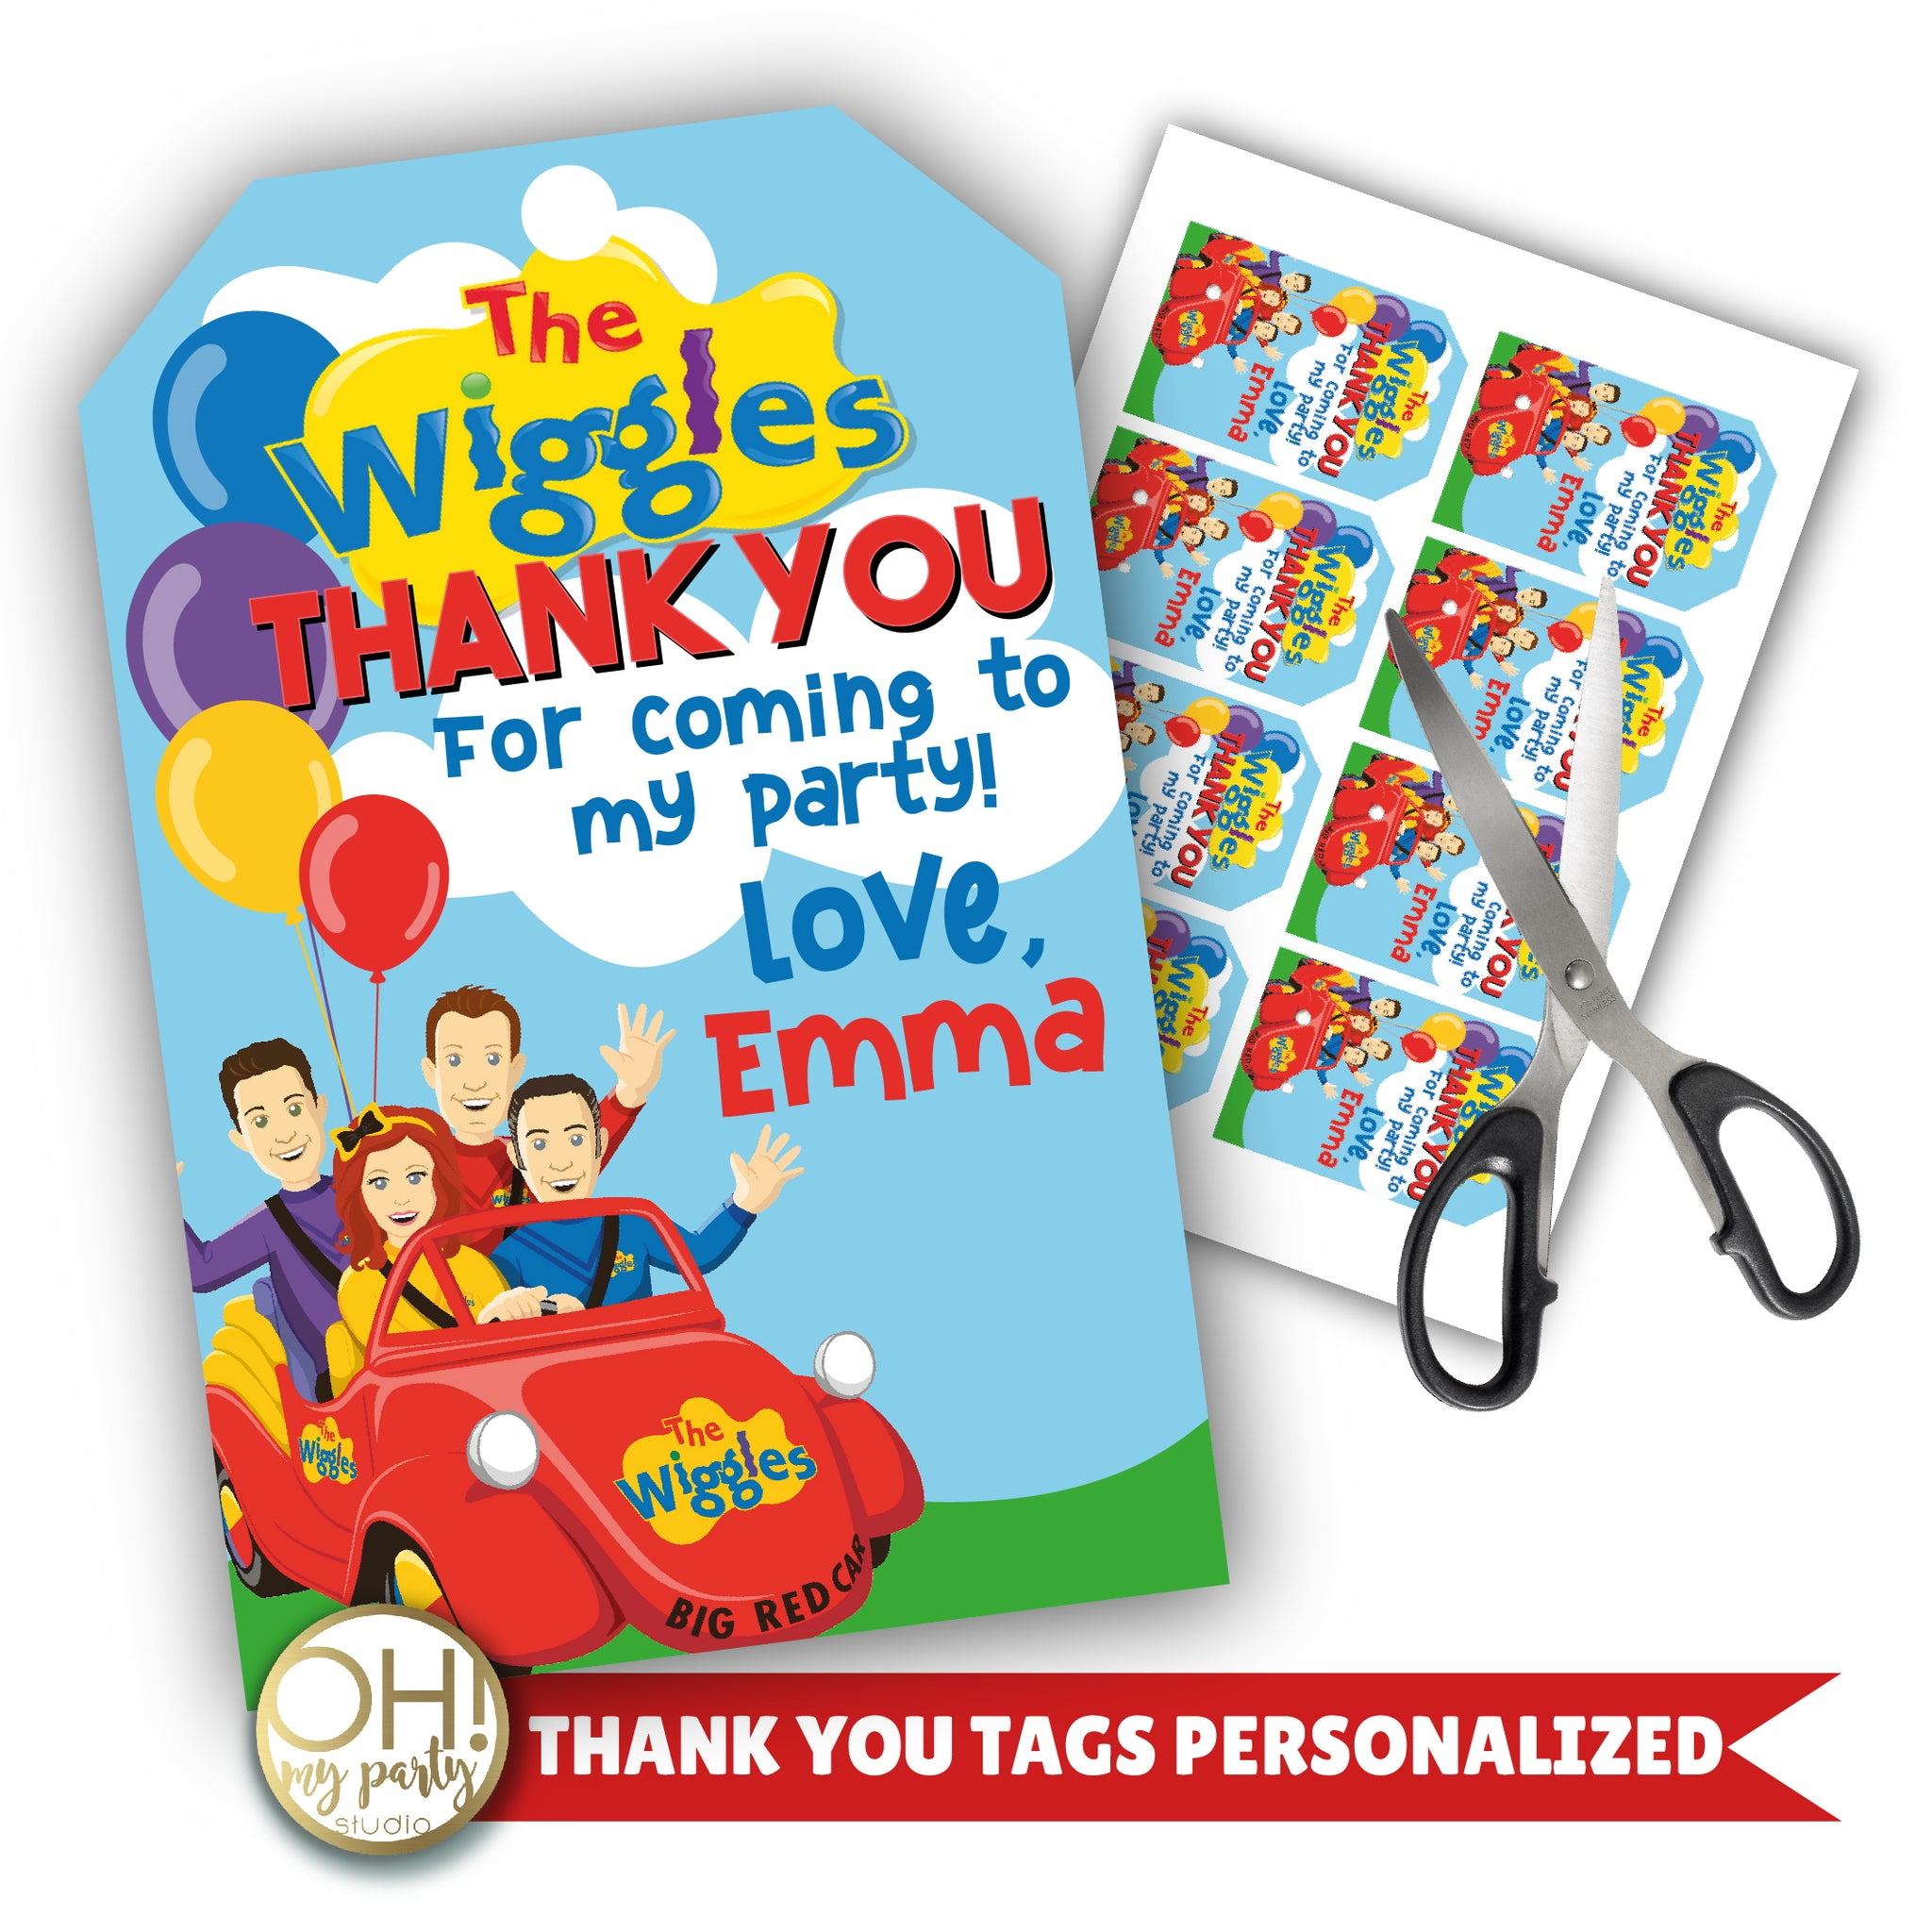 THE WIGGLES BIRTHDAY PARTY, THE WIGGLES THANK YOU TAGS, THE WIGGLES FAVORS, THE WIGGLES PARTY DECORATIONS, THE WIGGLES PARTY SUPPLIES, THE WIGGLES THANK YOU, THE WIGGLES PARTY IDEAS, THE WIGGLES DECORATION, THE WIGGLE TAGS, THE WIGGLES BIRTHDAY, THE WIGGLES PARTY